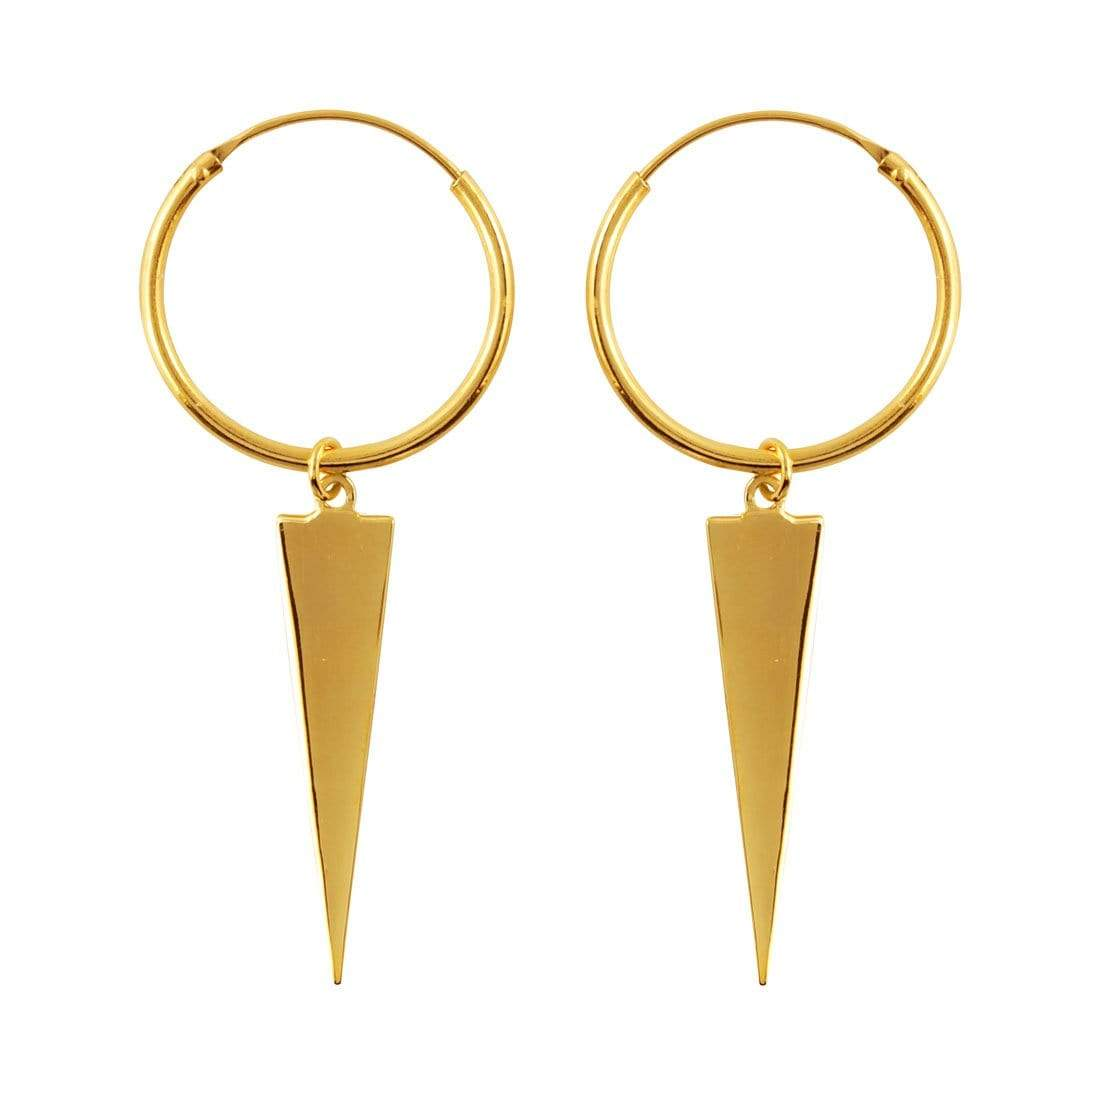 Midsummer Star Earrings Gold Apex Sleepers